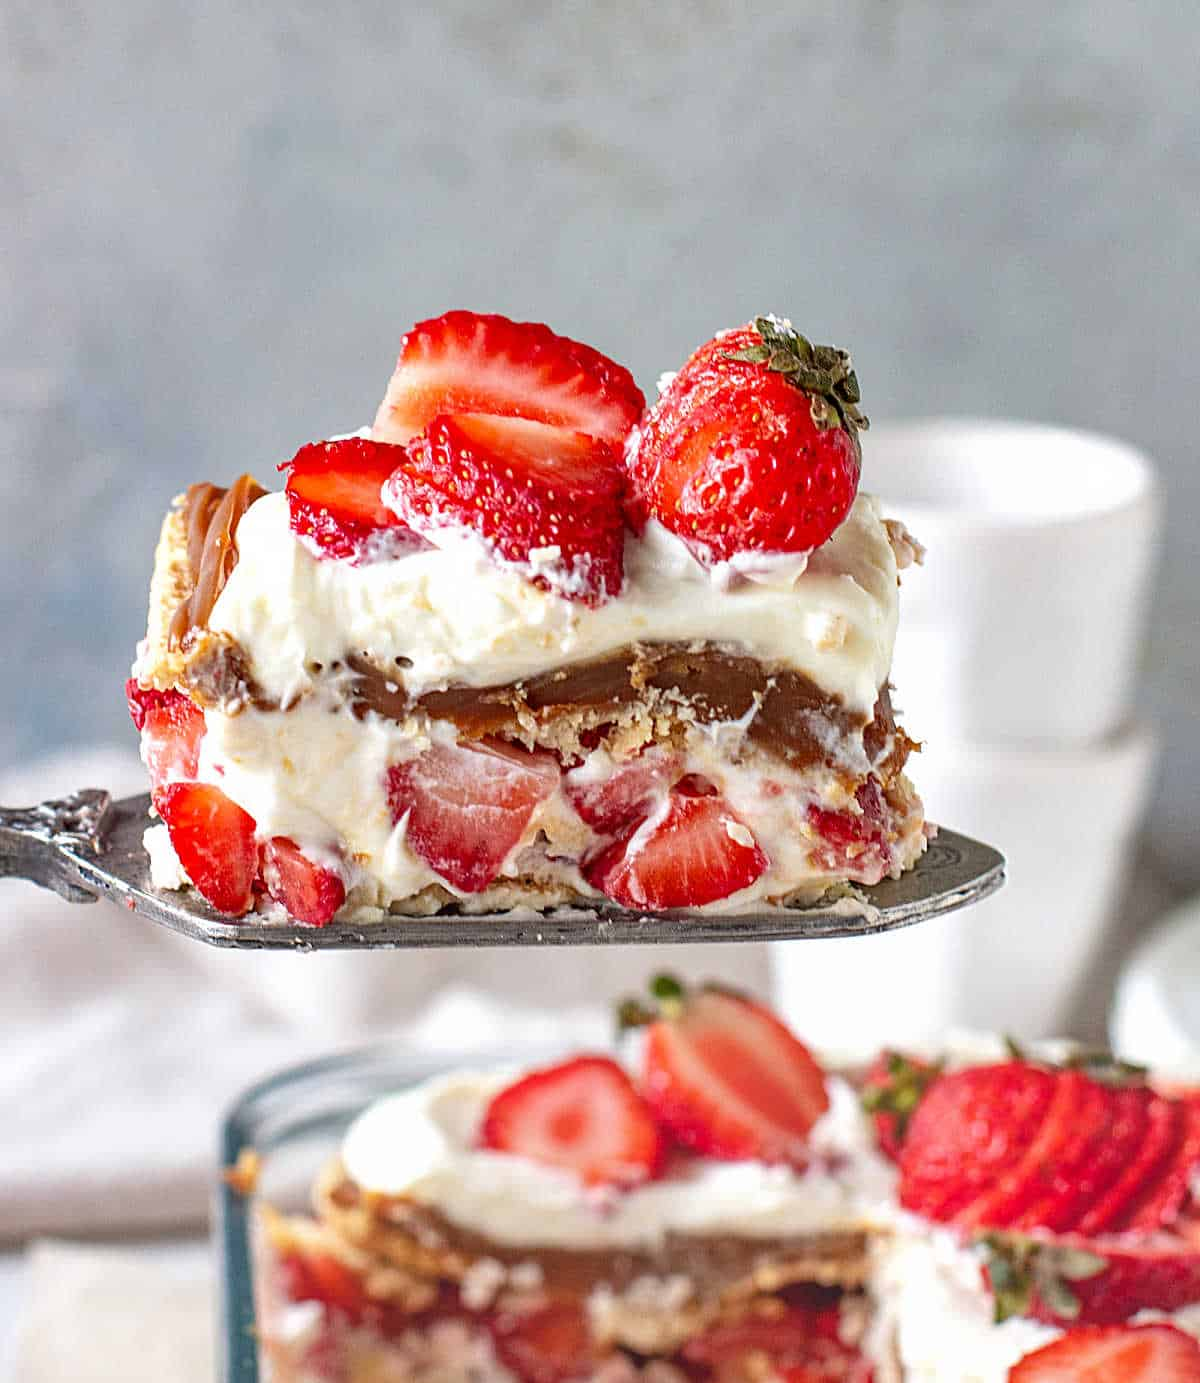 Lifting a slice of no-bake strawberry cake with an antique cake server, dessert dish beneath it